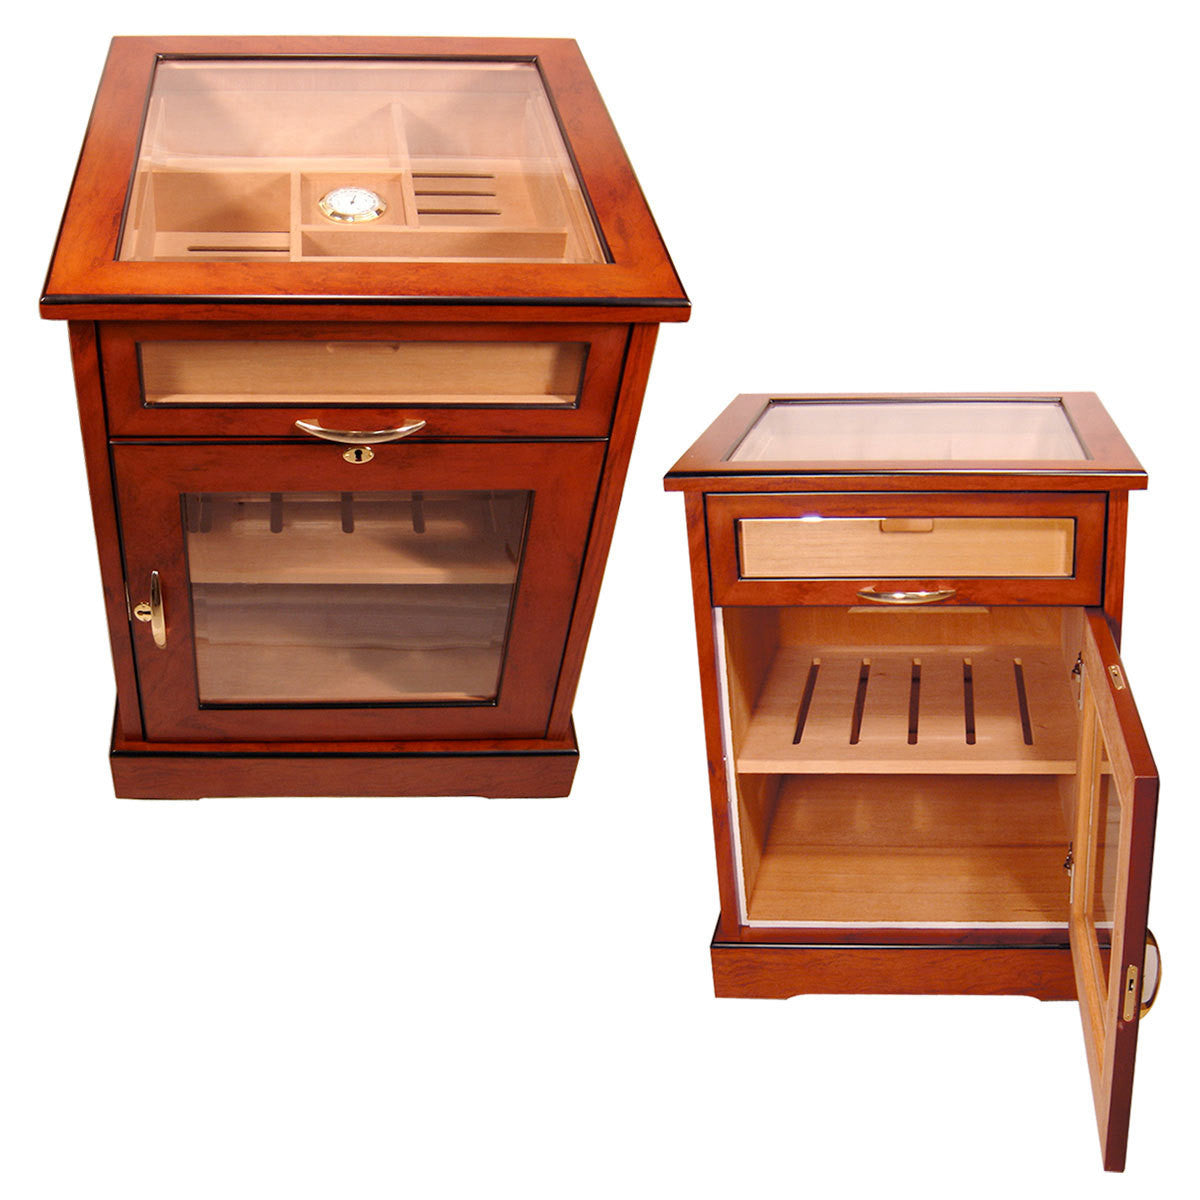 End Table Humidor for 600 Cigars - Cigar boulevard